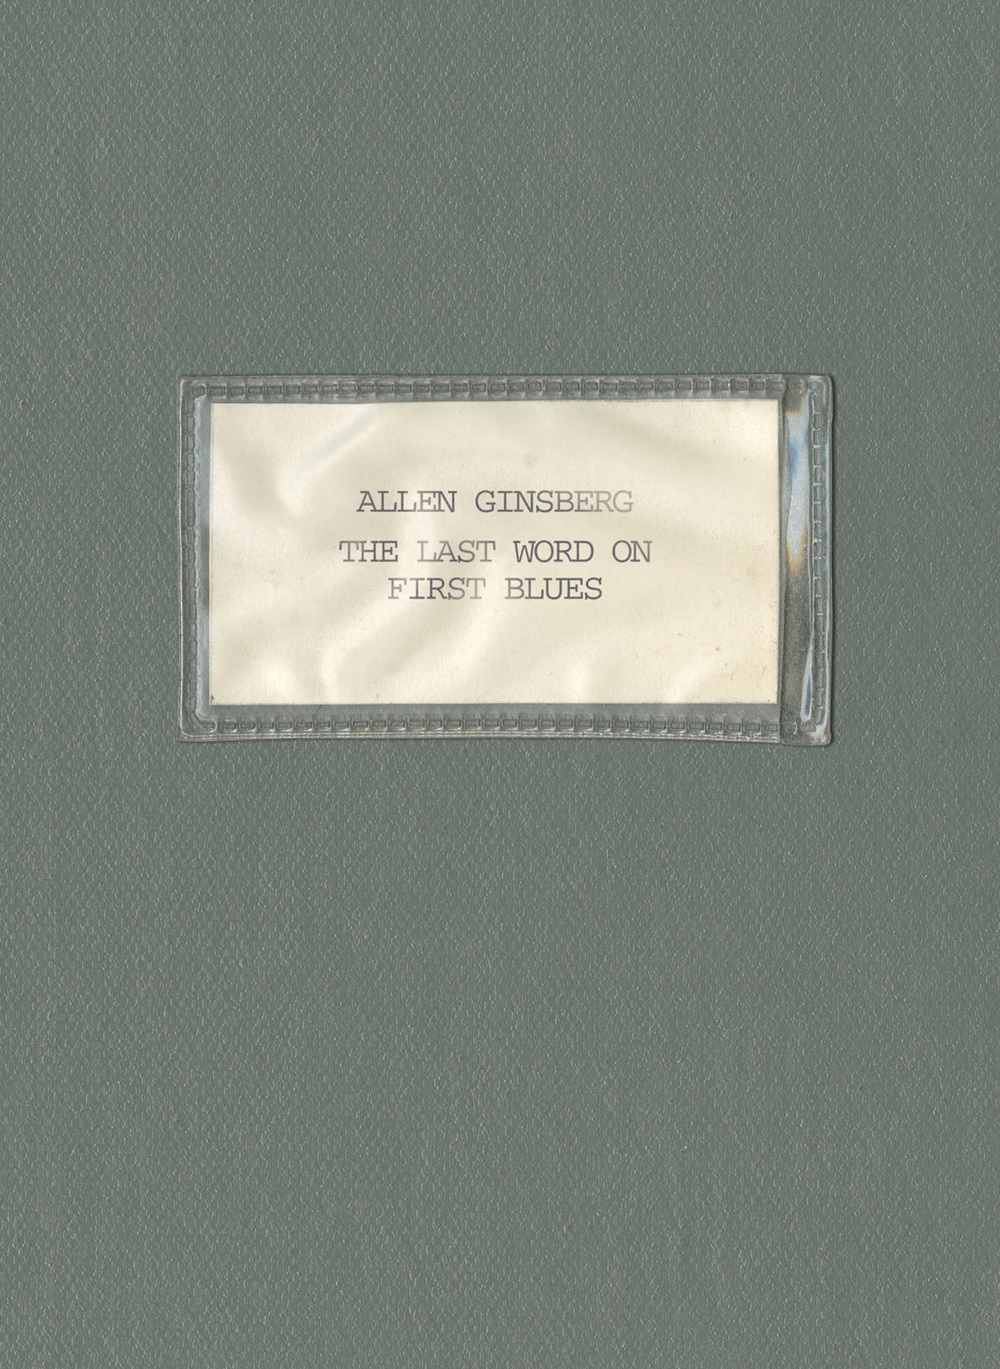 Allen Ginsberg-The Last Word On First Blues Release Date: February 20, 2016 Label: Omnivore Recordings